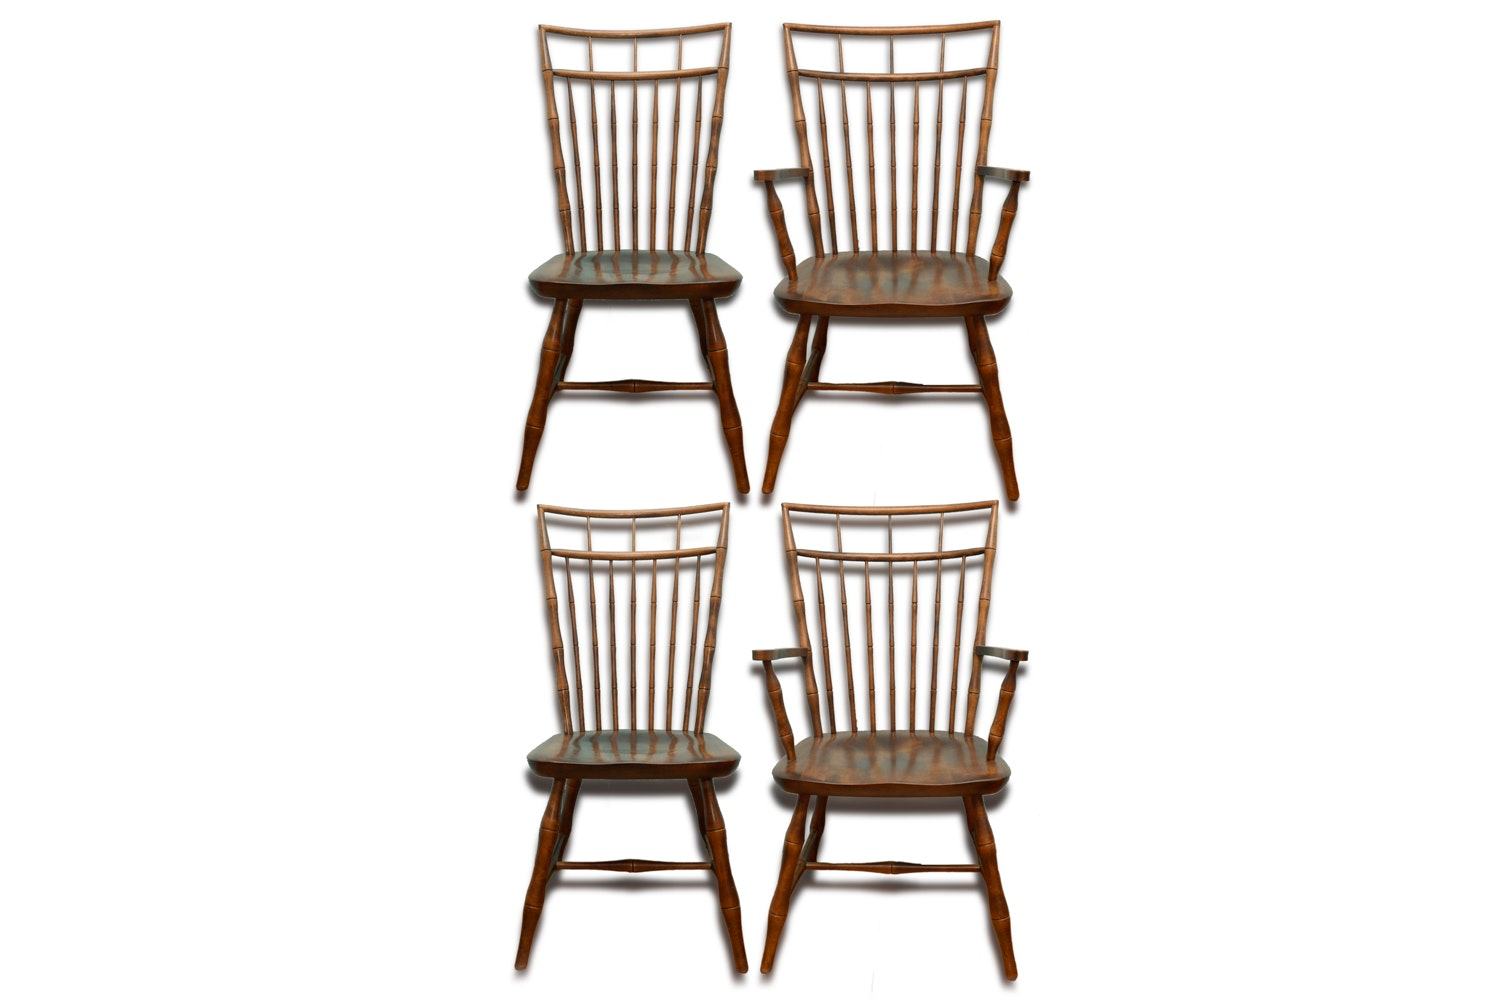 Birdcage Windsor Style Dining Chairs by Nichols & Stone Co.